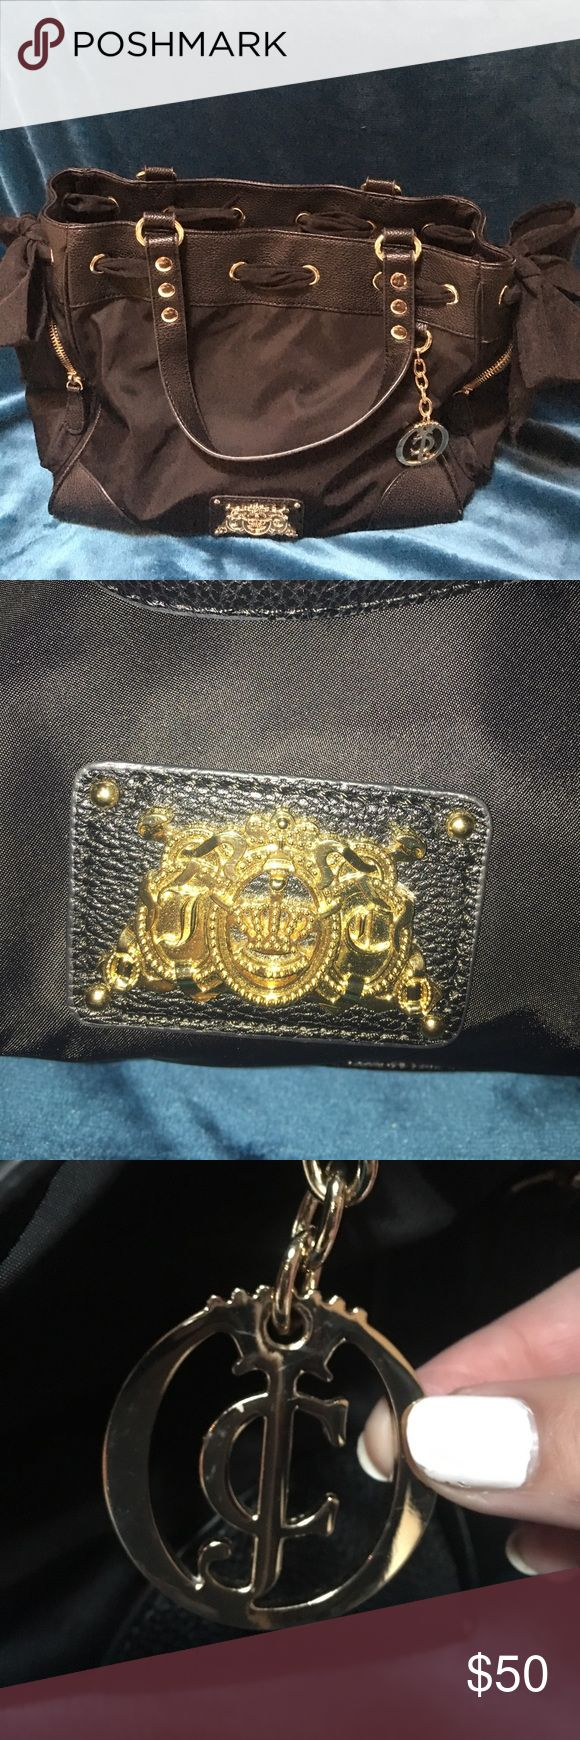 💋Juicy Couture purse💋 Black juicy couture purse. Great condition! Barely used. Perfect size! Two outside zipper pockets. Three pockets inside. Juicy Couture Bags